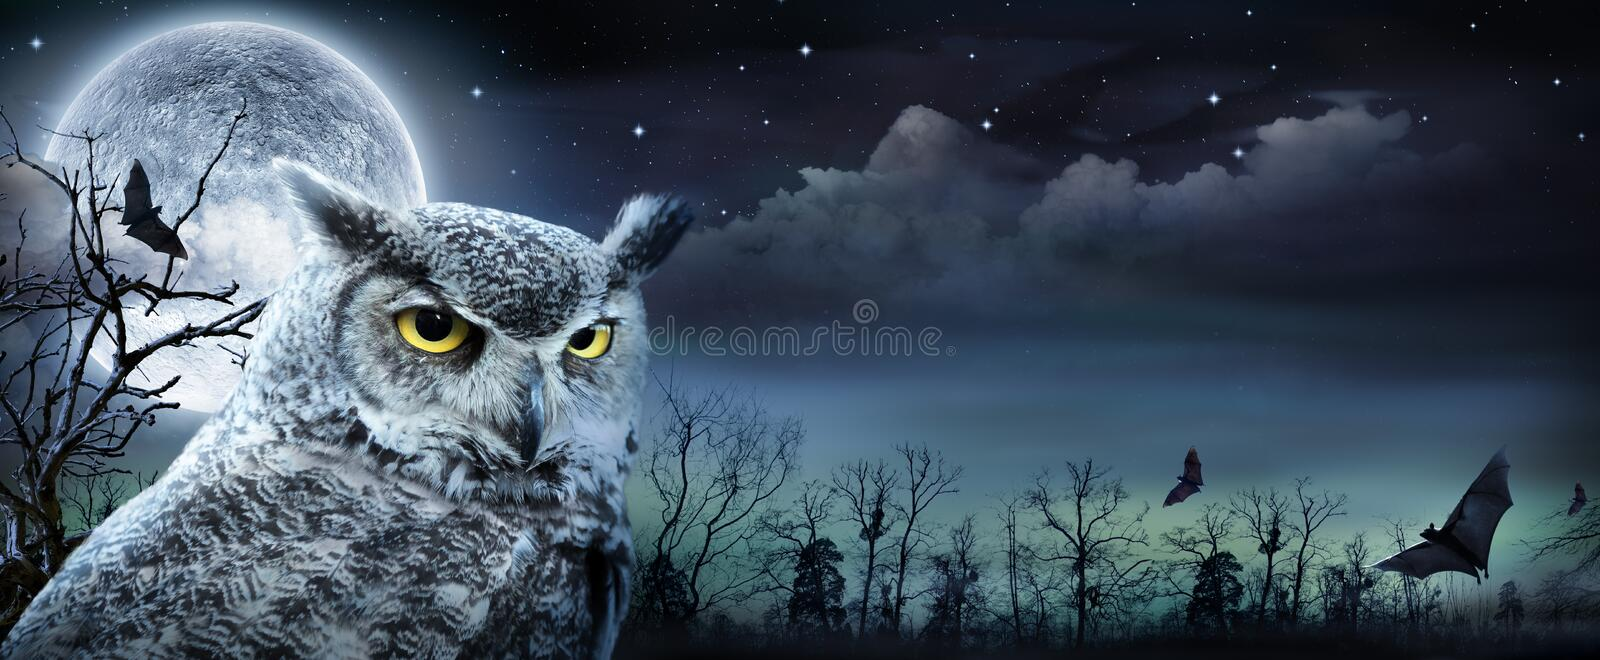 Halloween Scene With Owl royalty free stock photo